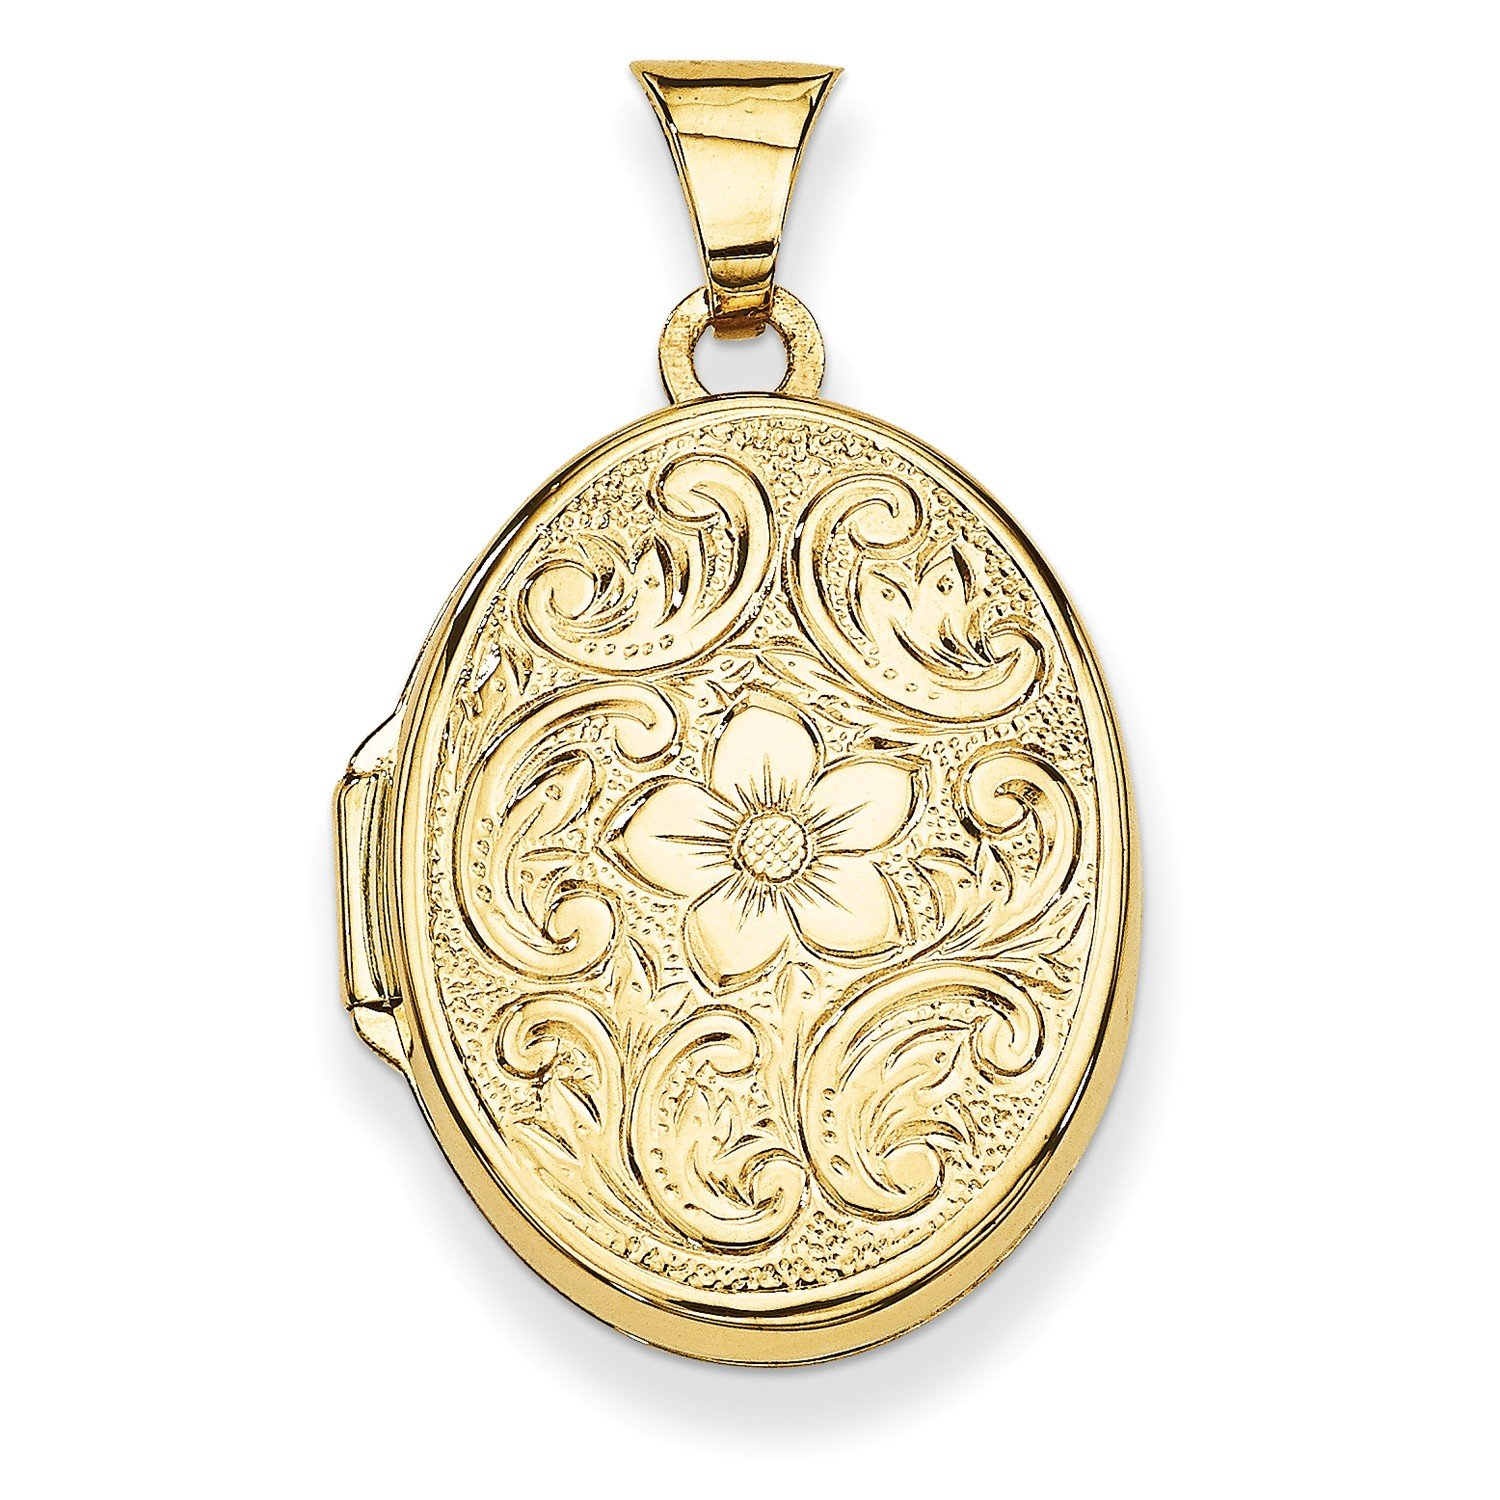 Roy Rose Jewelry 14K Yellow Gold Scrolled Floral Locket 30x21mm by Roy Rose Jewelry